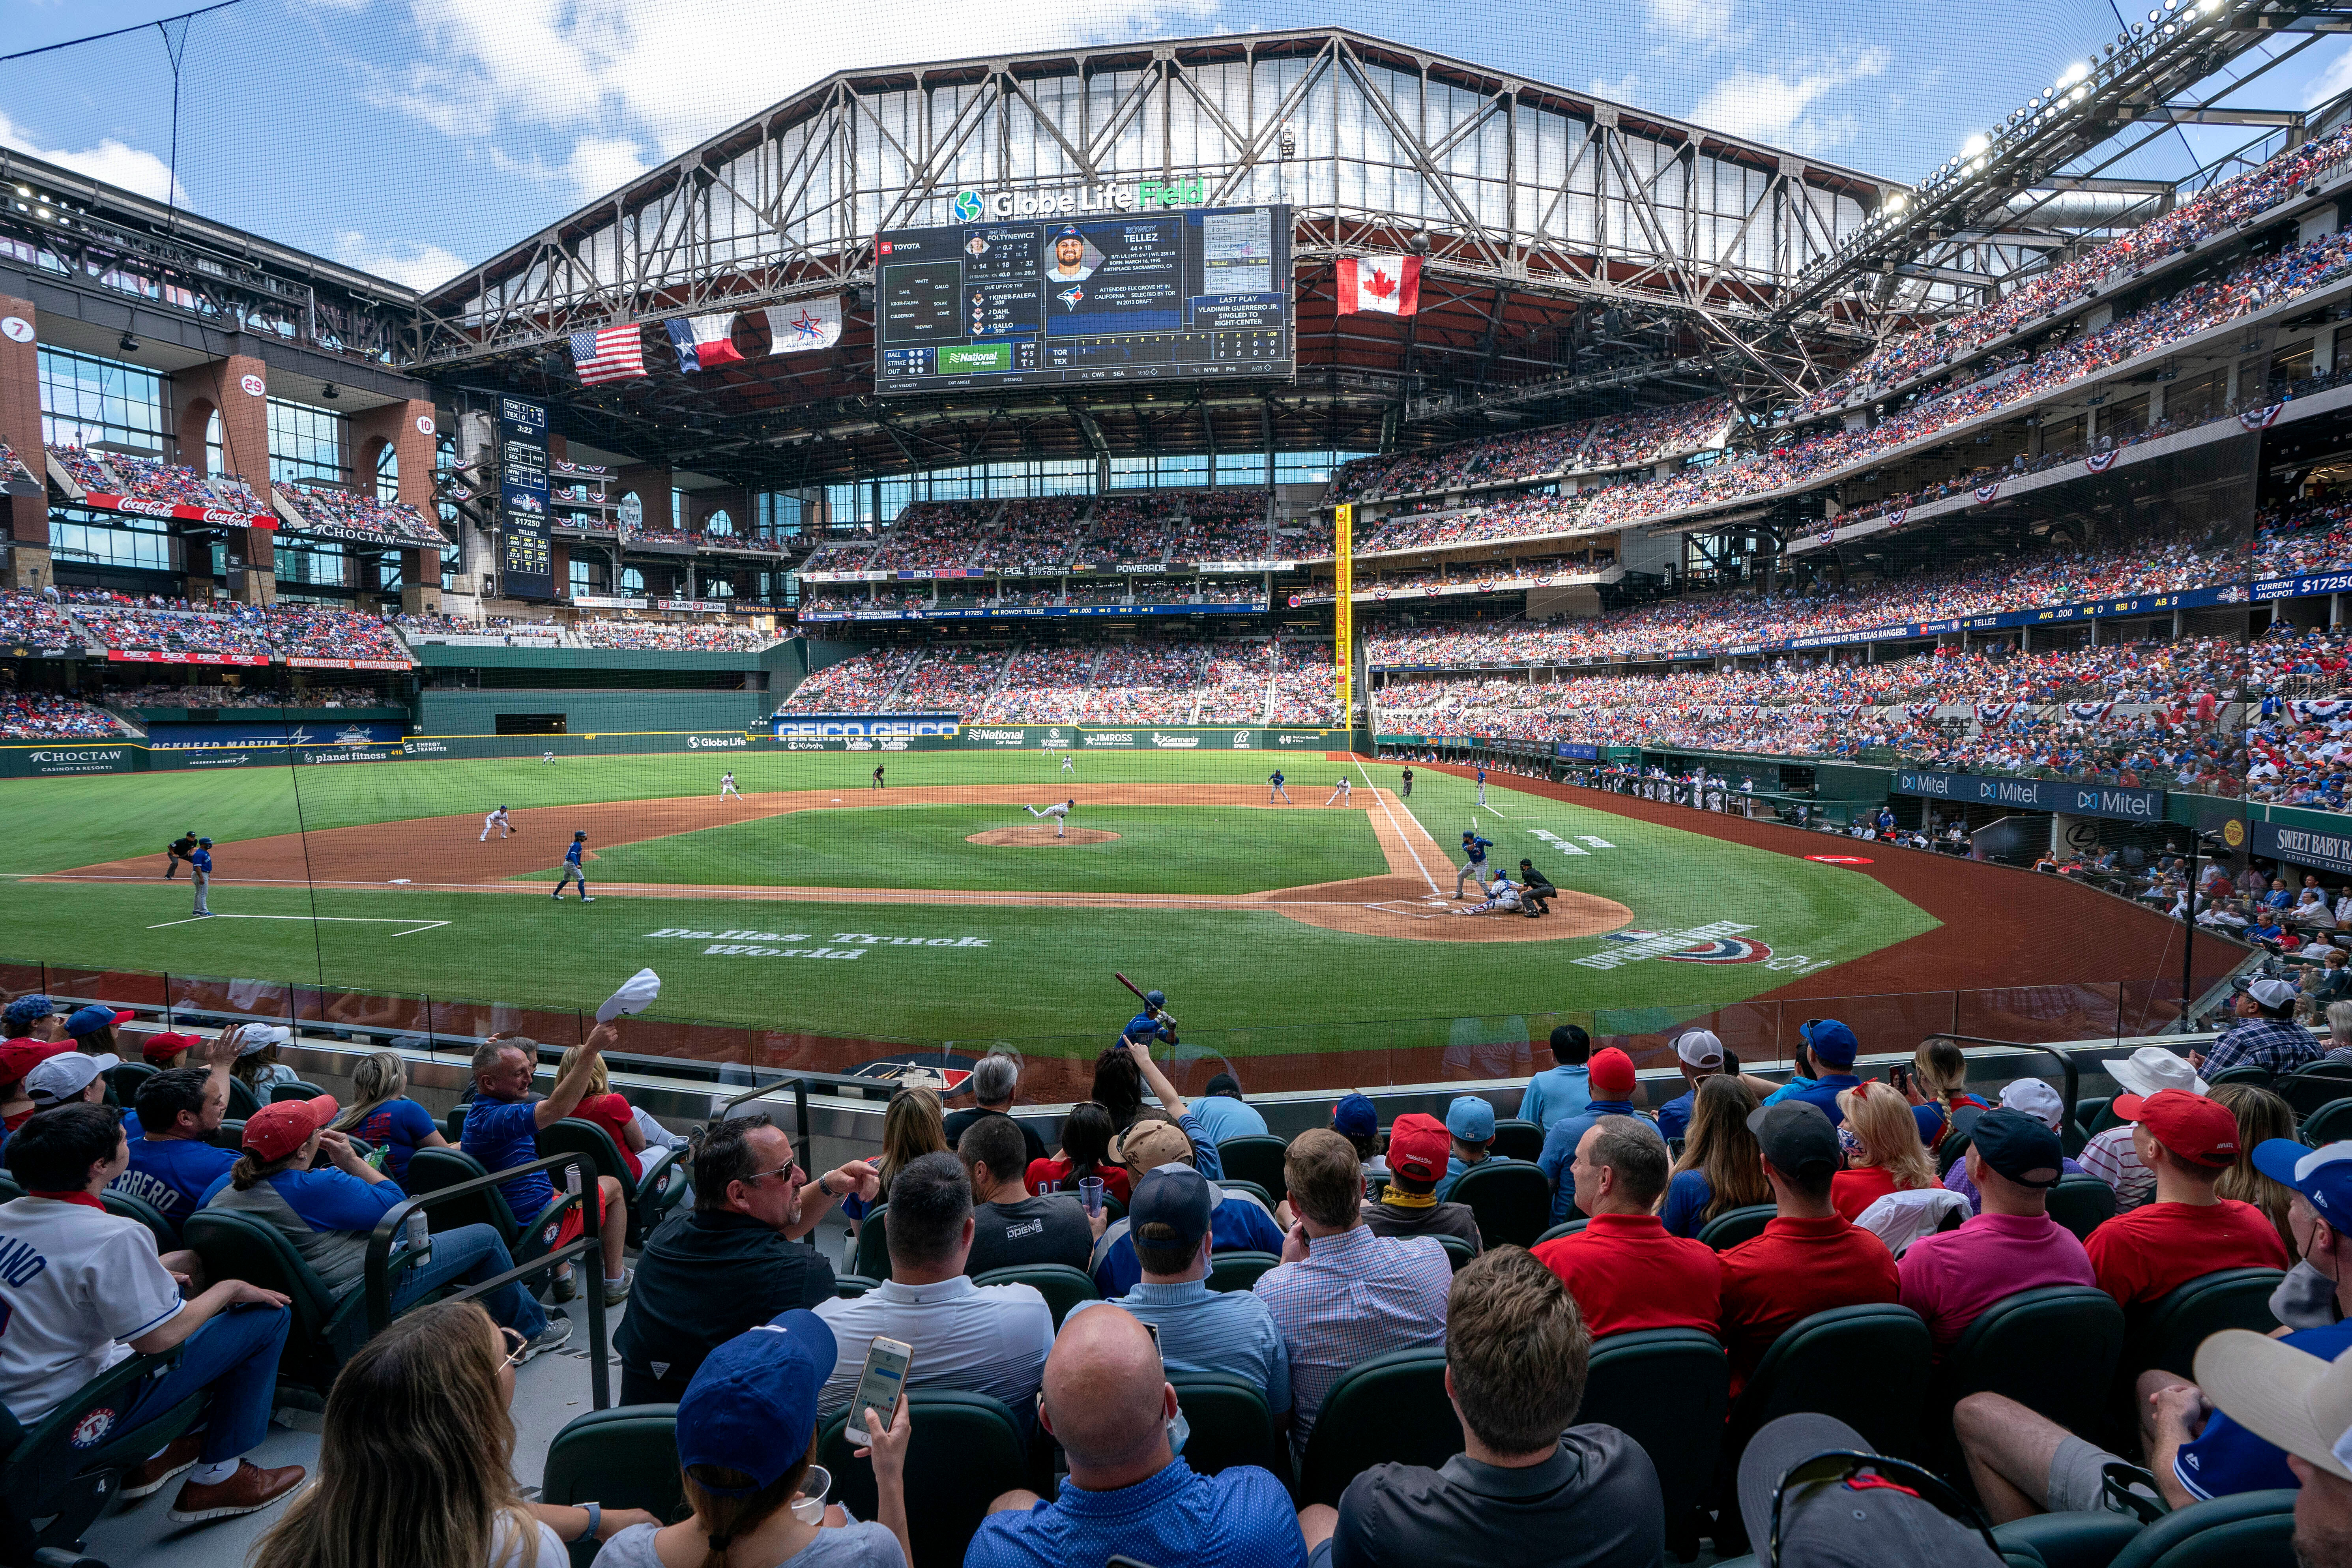 People fill the stands at Globe Life Field in Arlington, Texas, during a baseball game between the Texas Rangers and the Toronto Blue Jays on April 5.